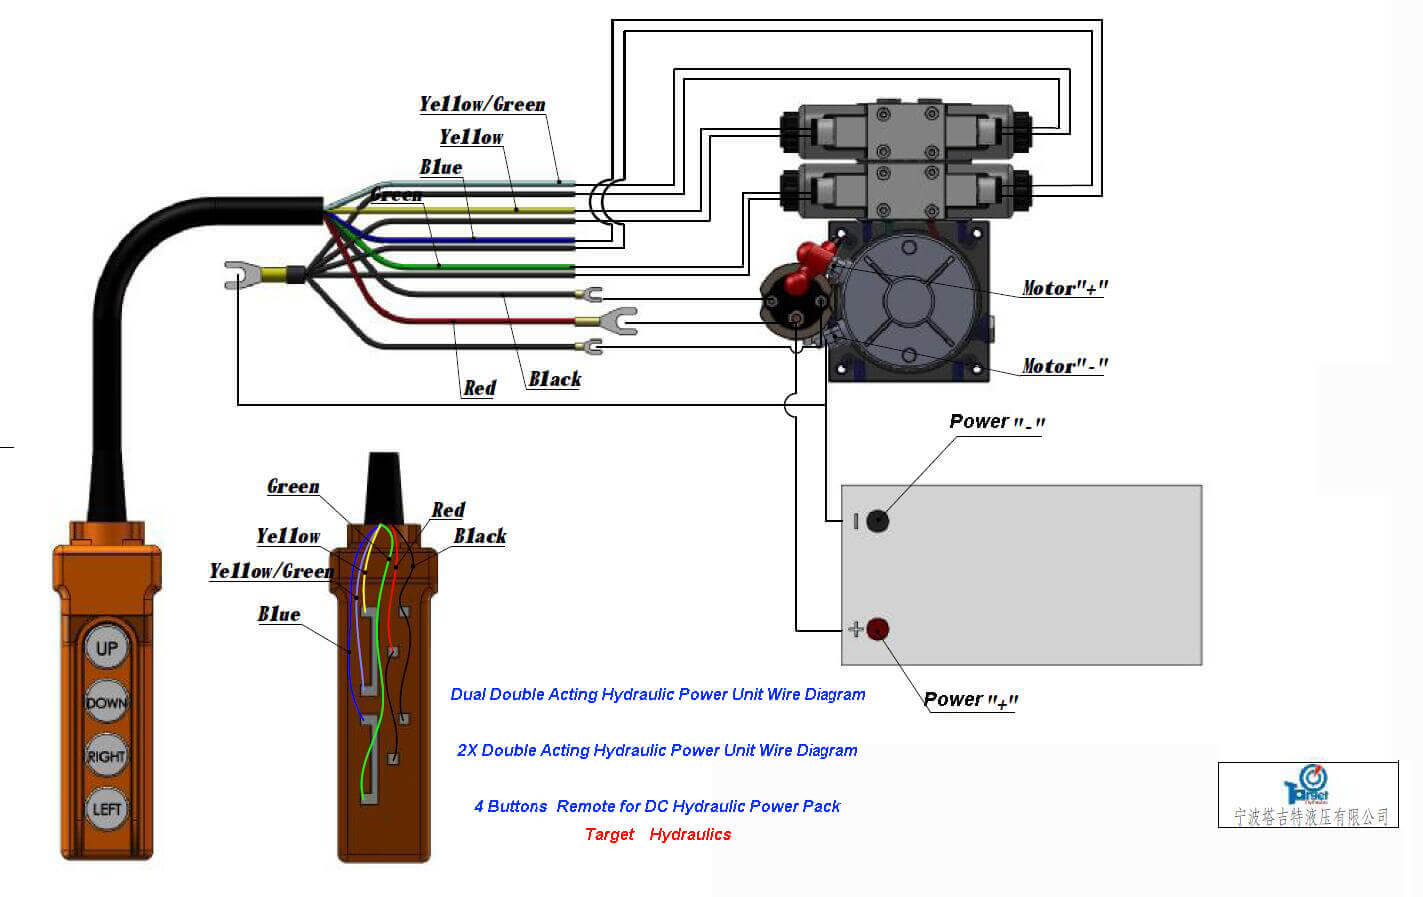 furnace blower motor wiring 3 wire how to wire hydraulic power pack,power unit diagram design hydrolic motor wiring 3 wire #1